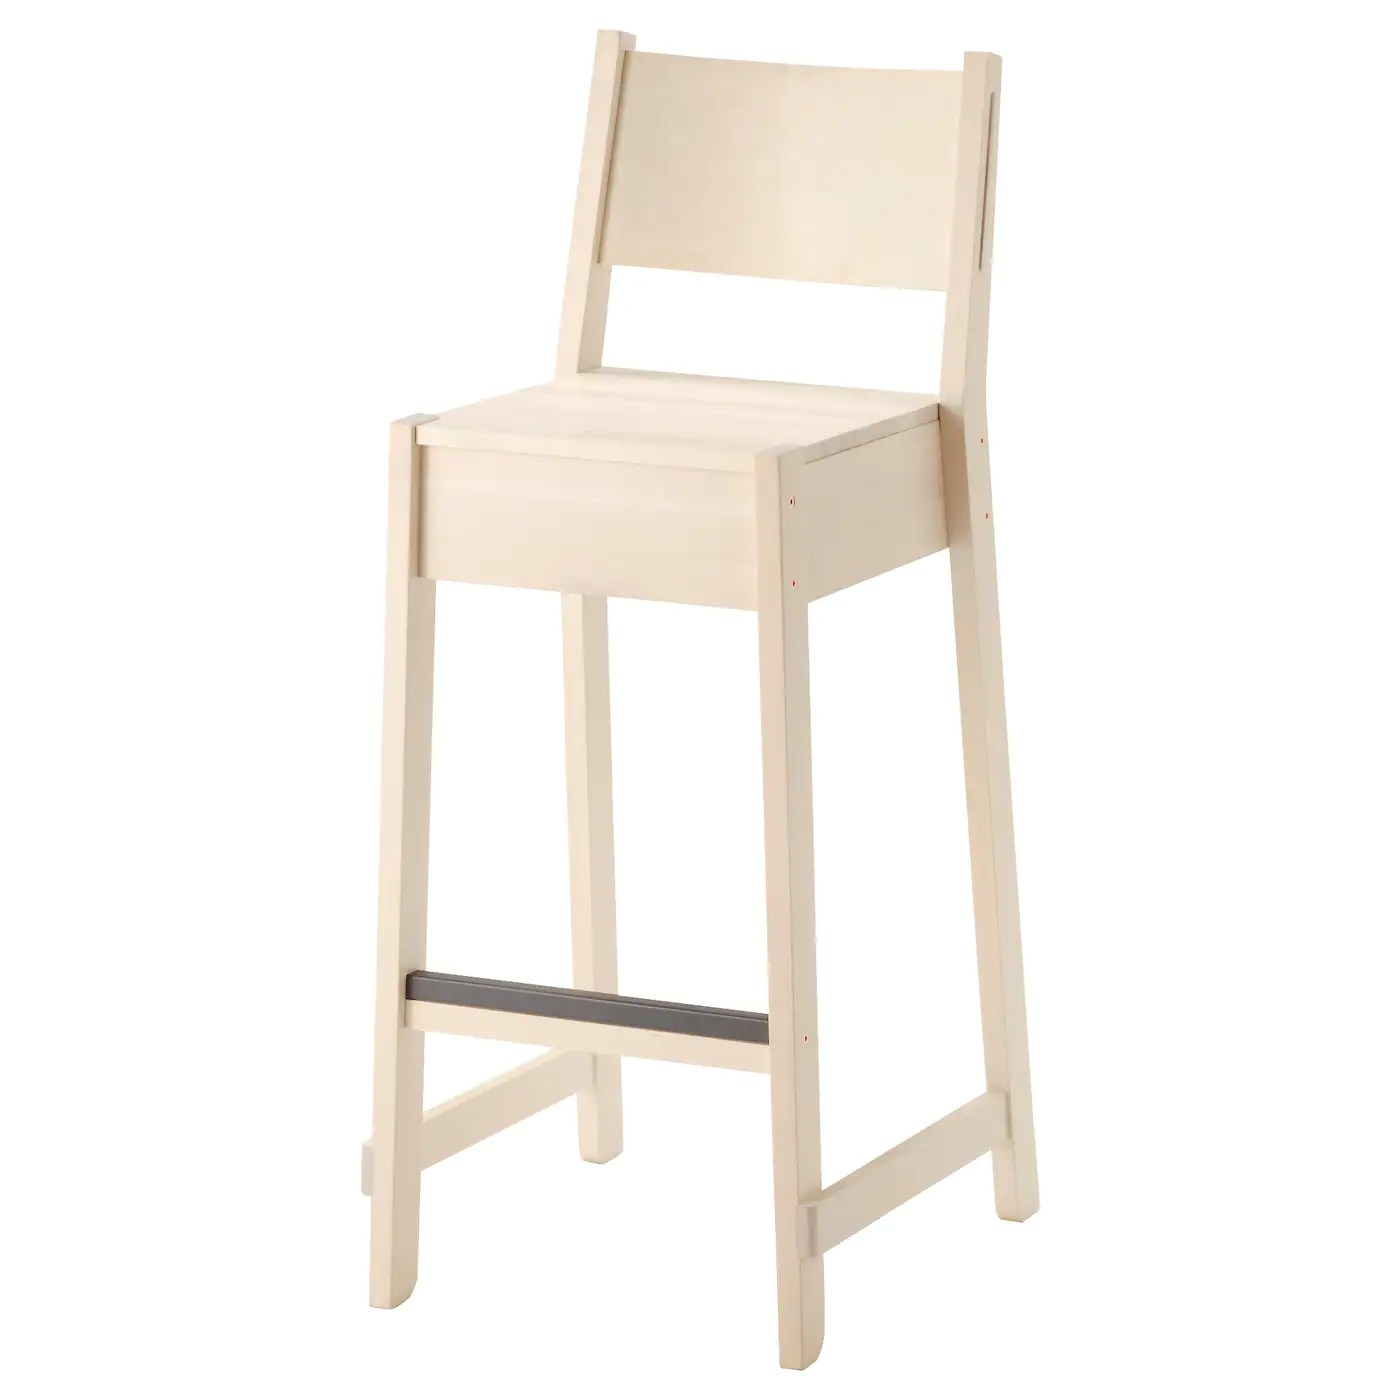 ikea bar chair indoor hanging chairs norrÅker stool with backrest white birch 74 cm